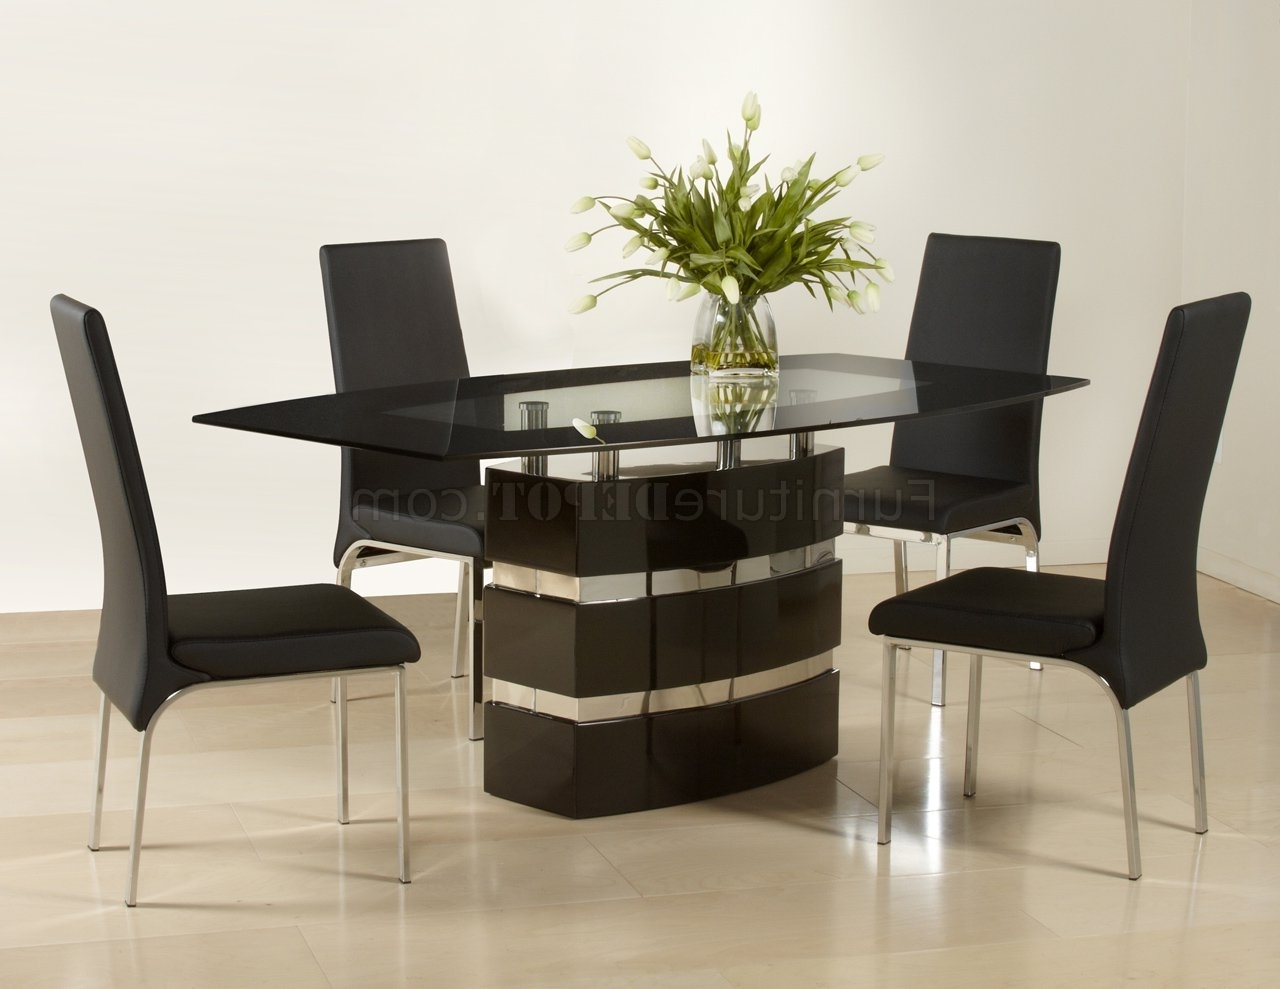 Black High Gloss Finish Modern Dining Table W/optional Chairs With Latest Black High Gloss Dining Tables And Chairs (View 15 of 25)